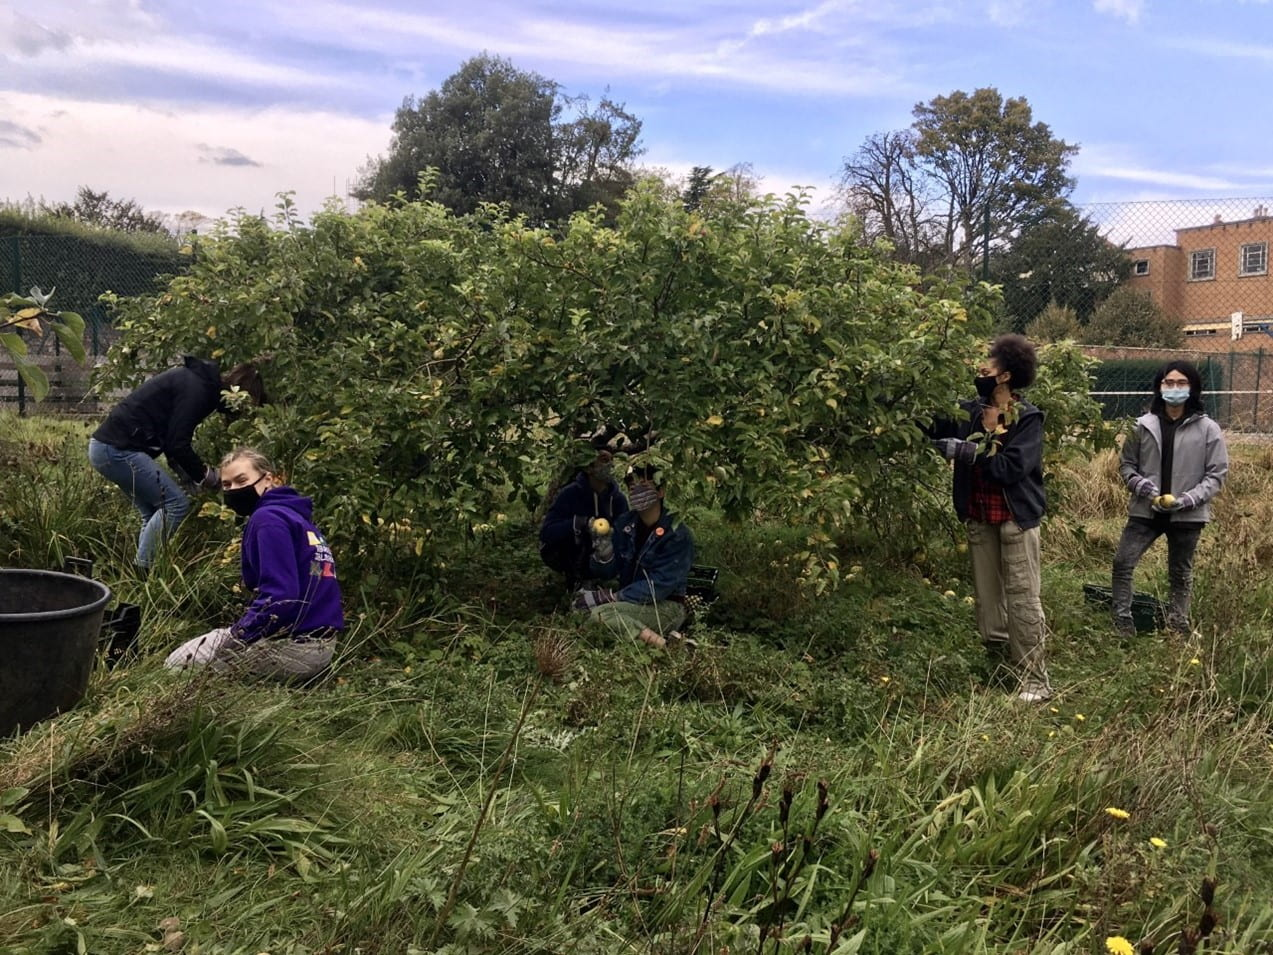 Students harvesting apples in Goldney Hall Heritage Orchard in October 2020.